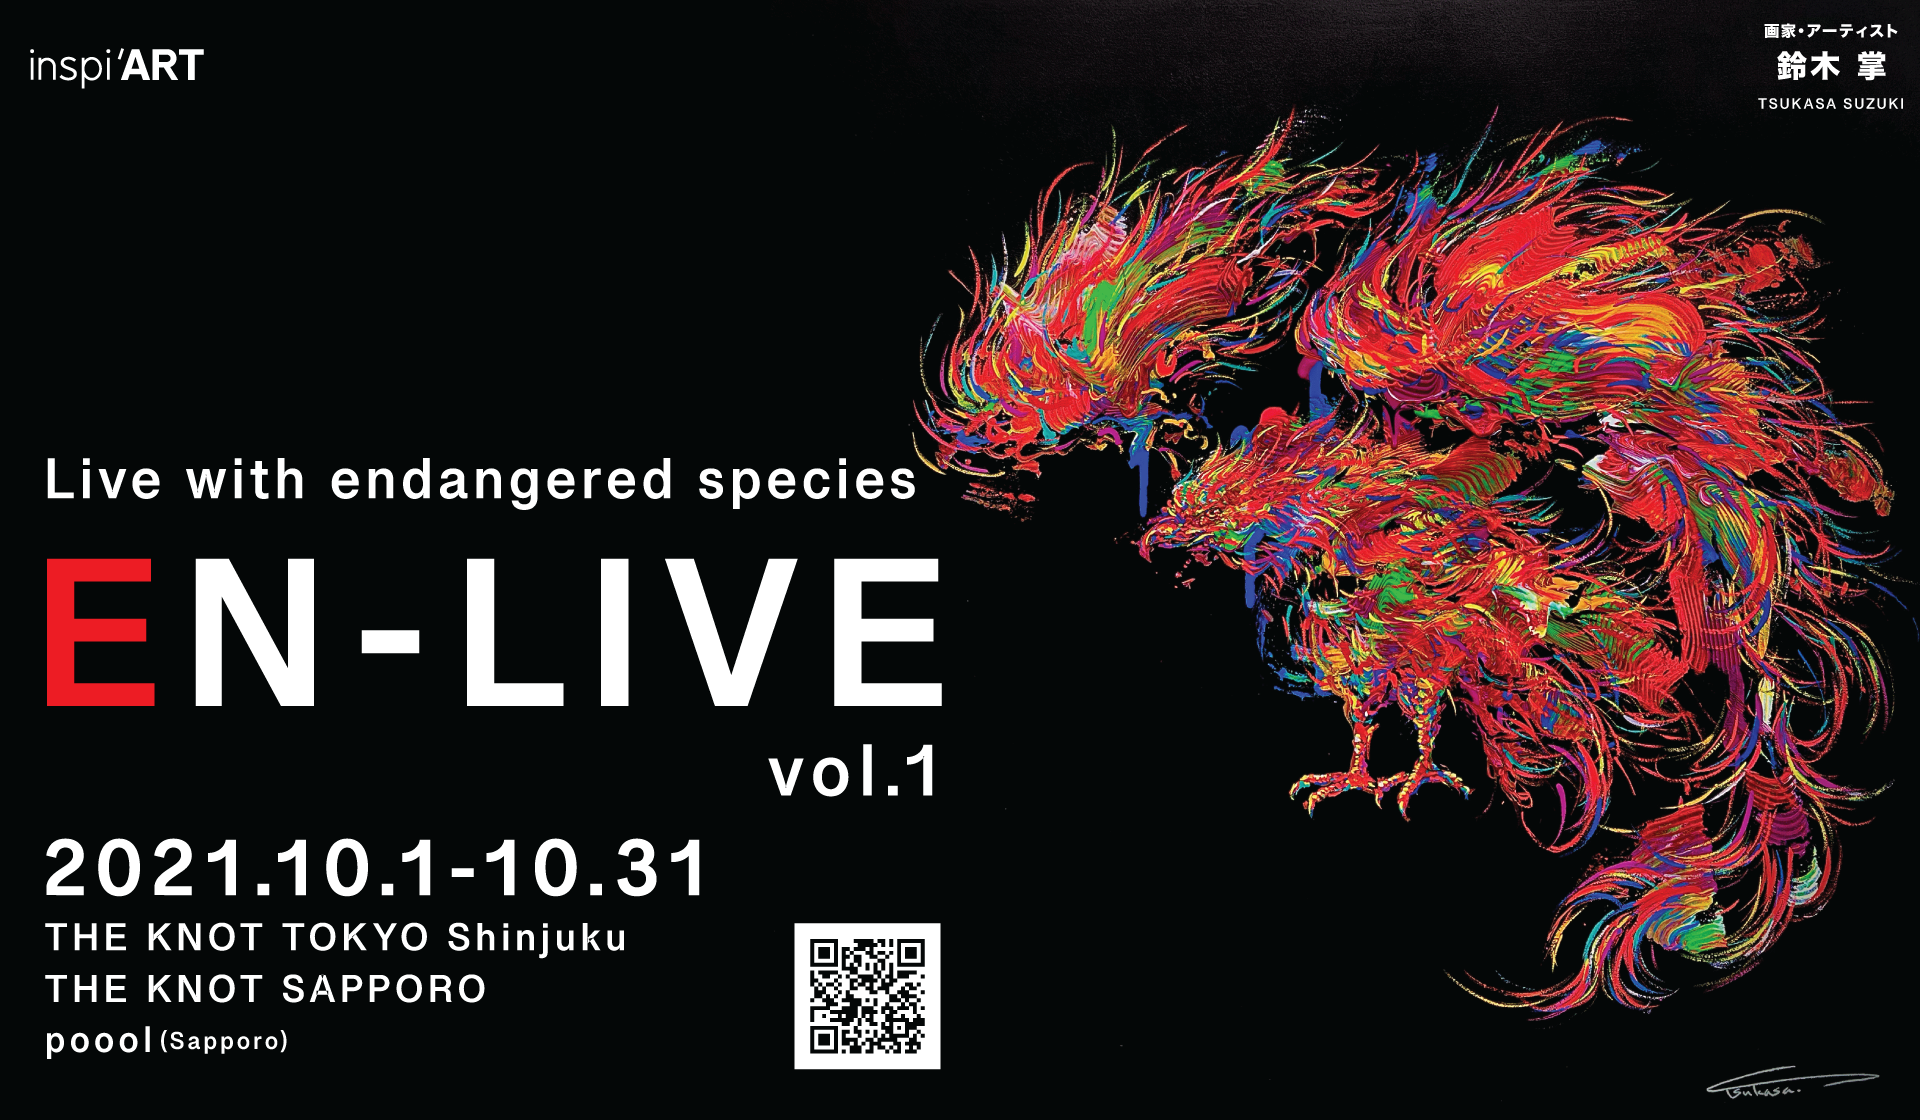 【Gallery】『En-live vol.1』 THE KNOT東京新宿、THE KNOT札幌、Pooolにて同時開催